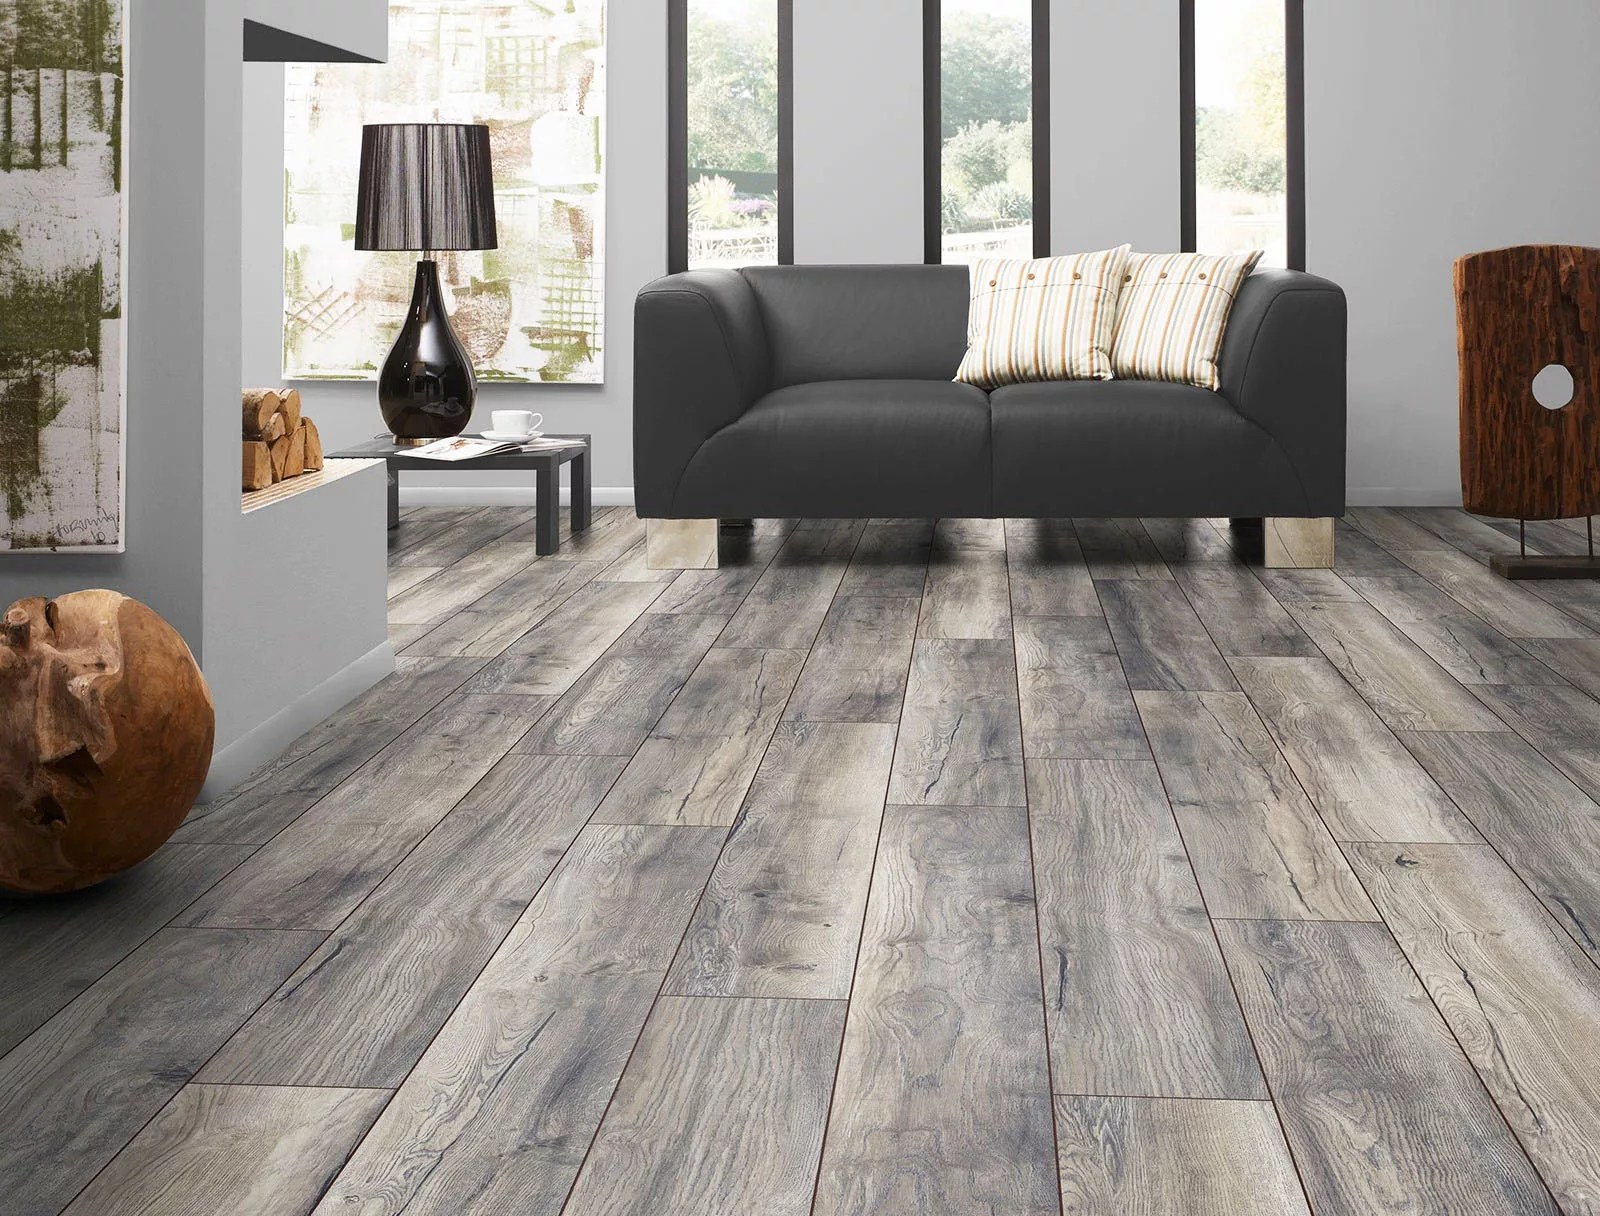 First I\u0027ll start with the pros of this floor and why it\u0027s making a massive comeback. & Laminate flooring review \u2013 Pros and cons brands and more